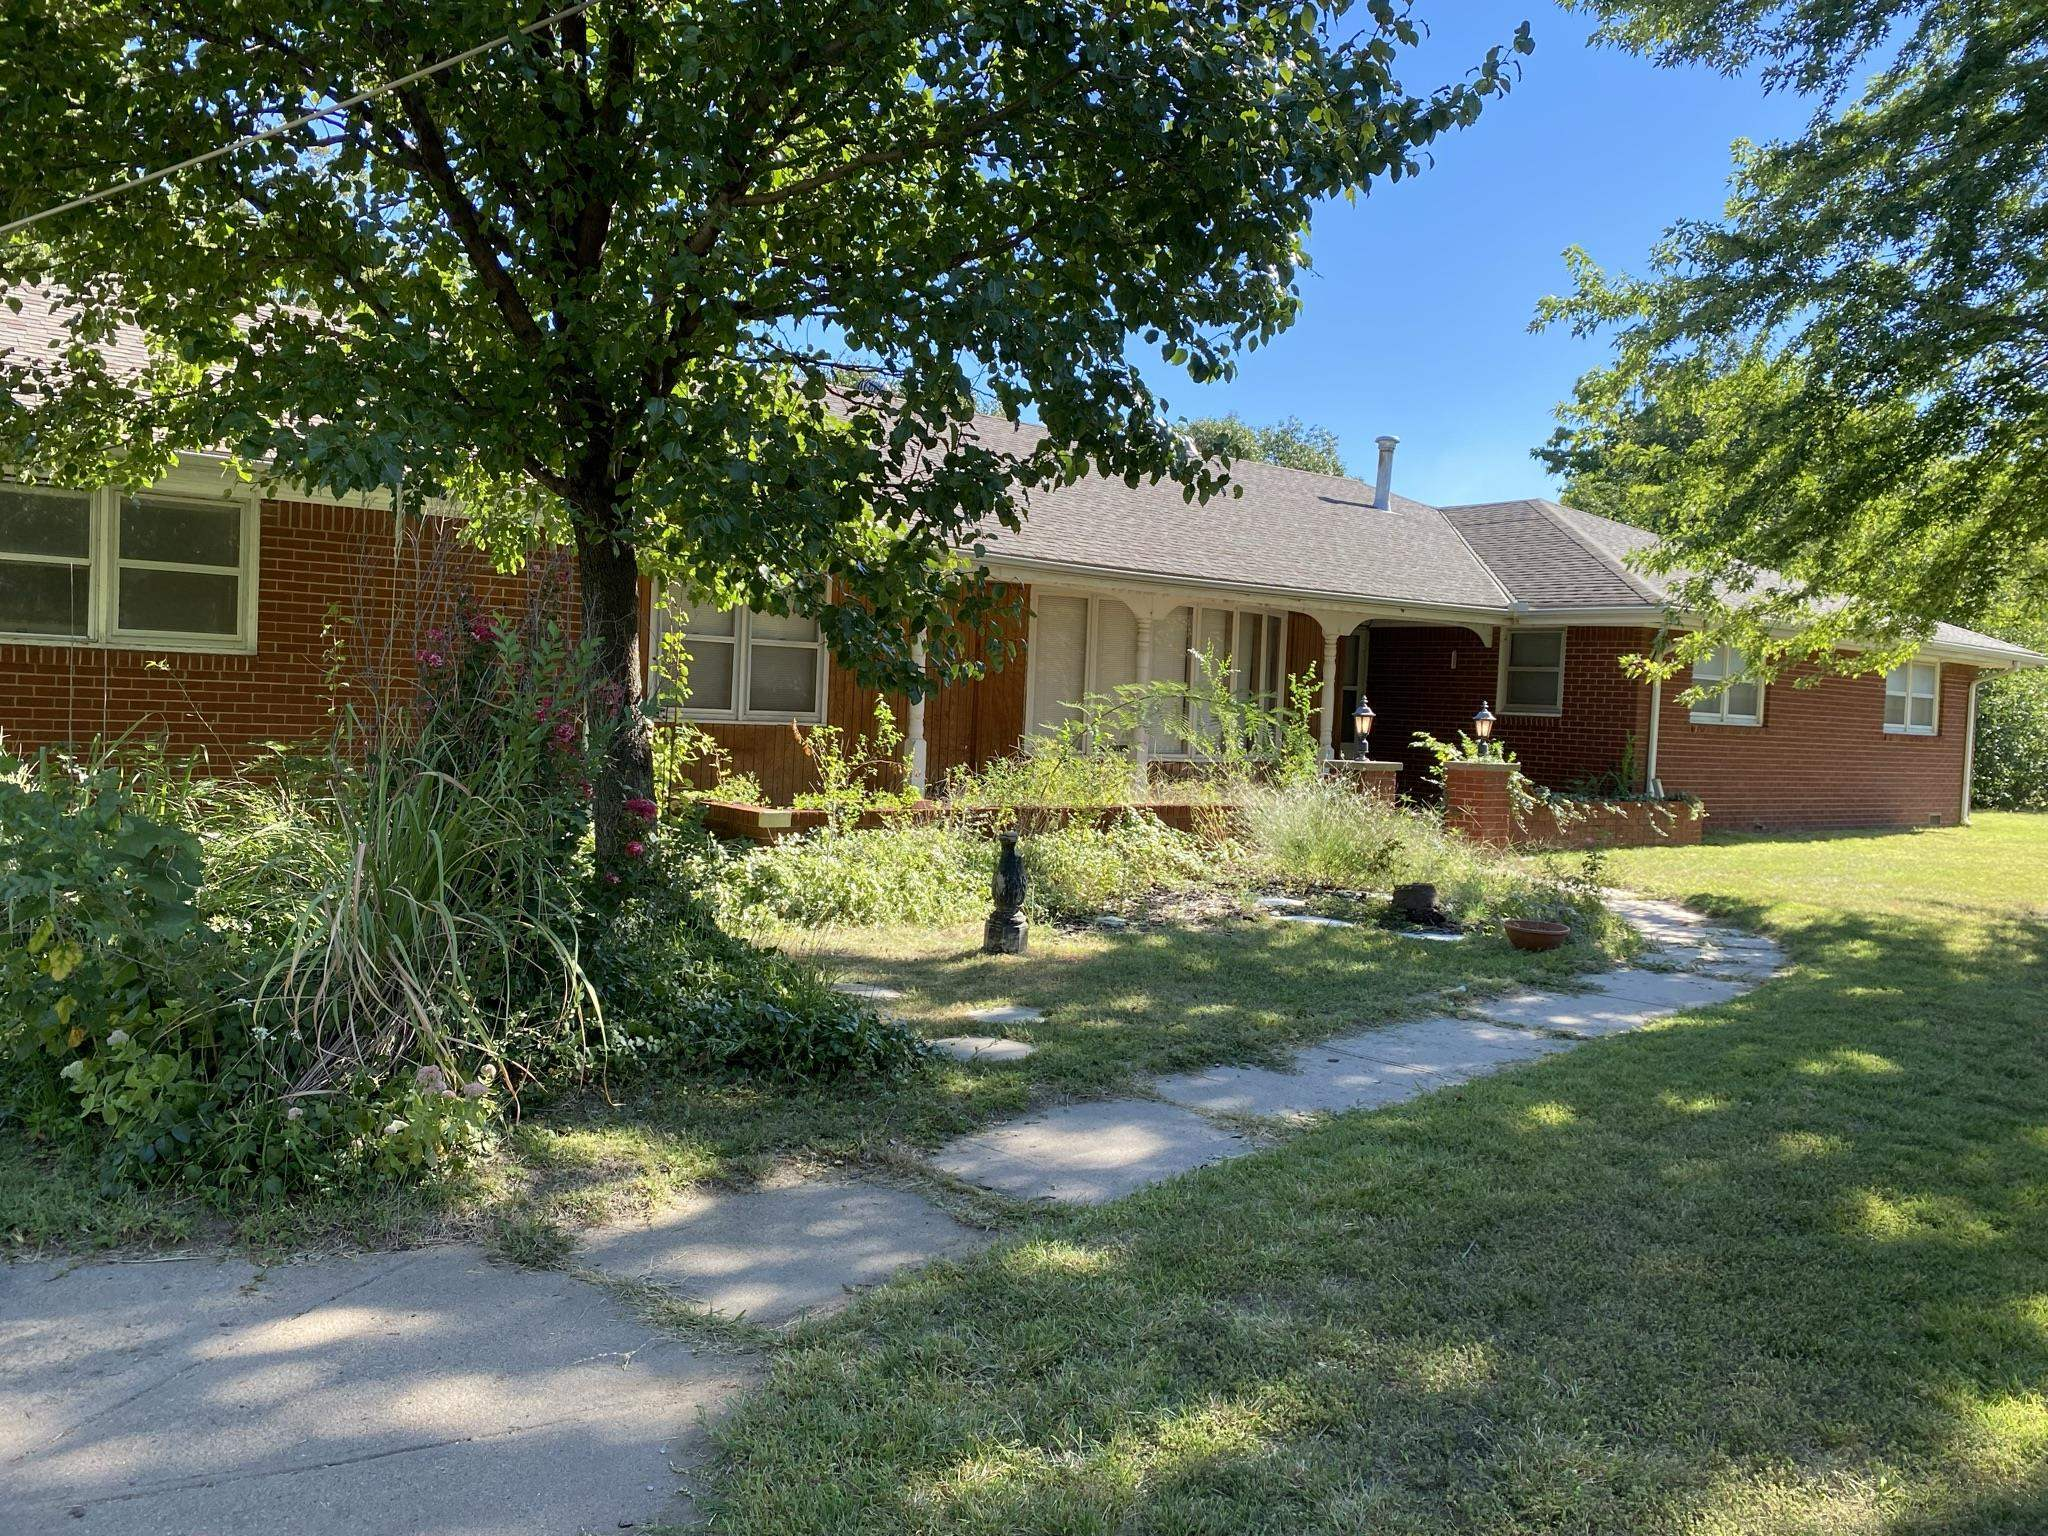 This is a rare find. Over 2,200 sq ft full brick ranch on over 1/2 acre corner lot. Open kitchen to the dining area, master bedroom with a full master bath. 1/2 bath off of the garage.